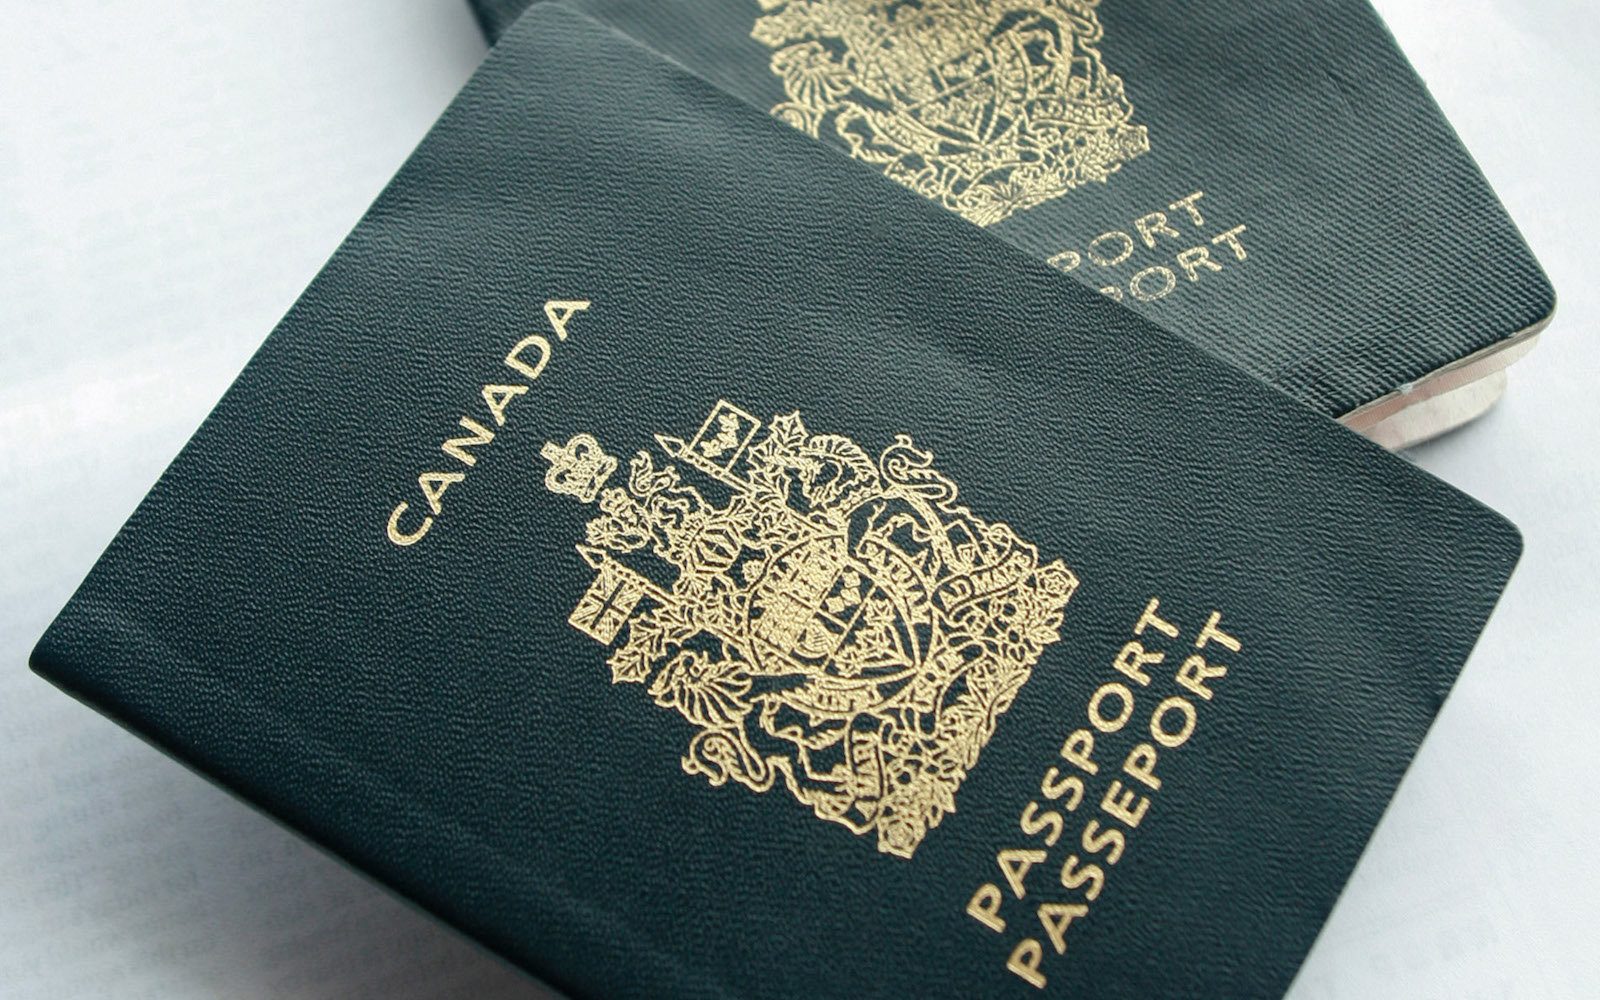 CANADA - JANUARY 22:  Canadian passports are arranged for a photograph in Big White, Canada, on Monday, Jan. 22, 2007, in Canada.  (Photo by Norm Betts/Bloomberg via Getty Images)